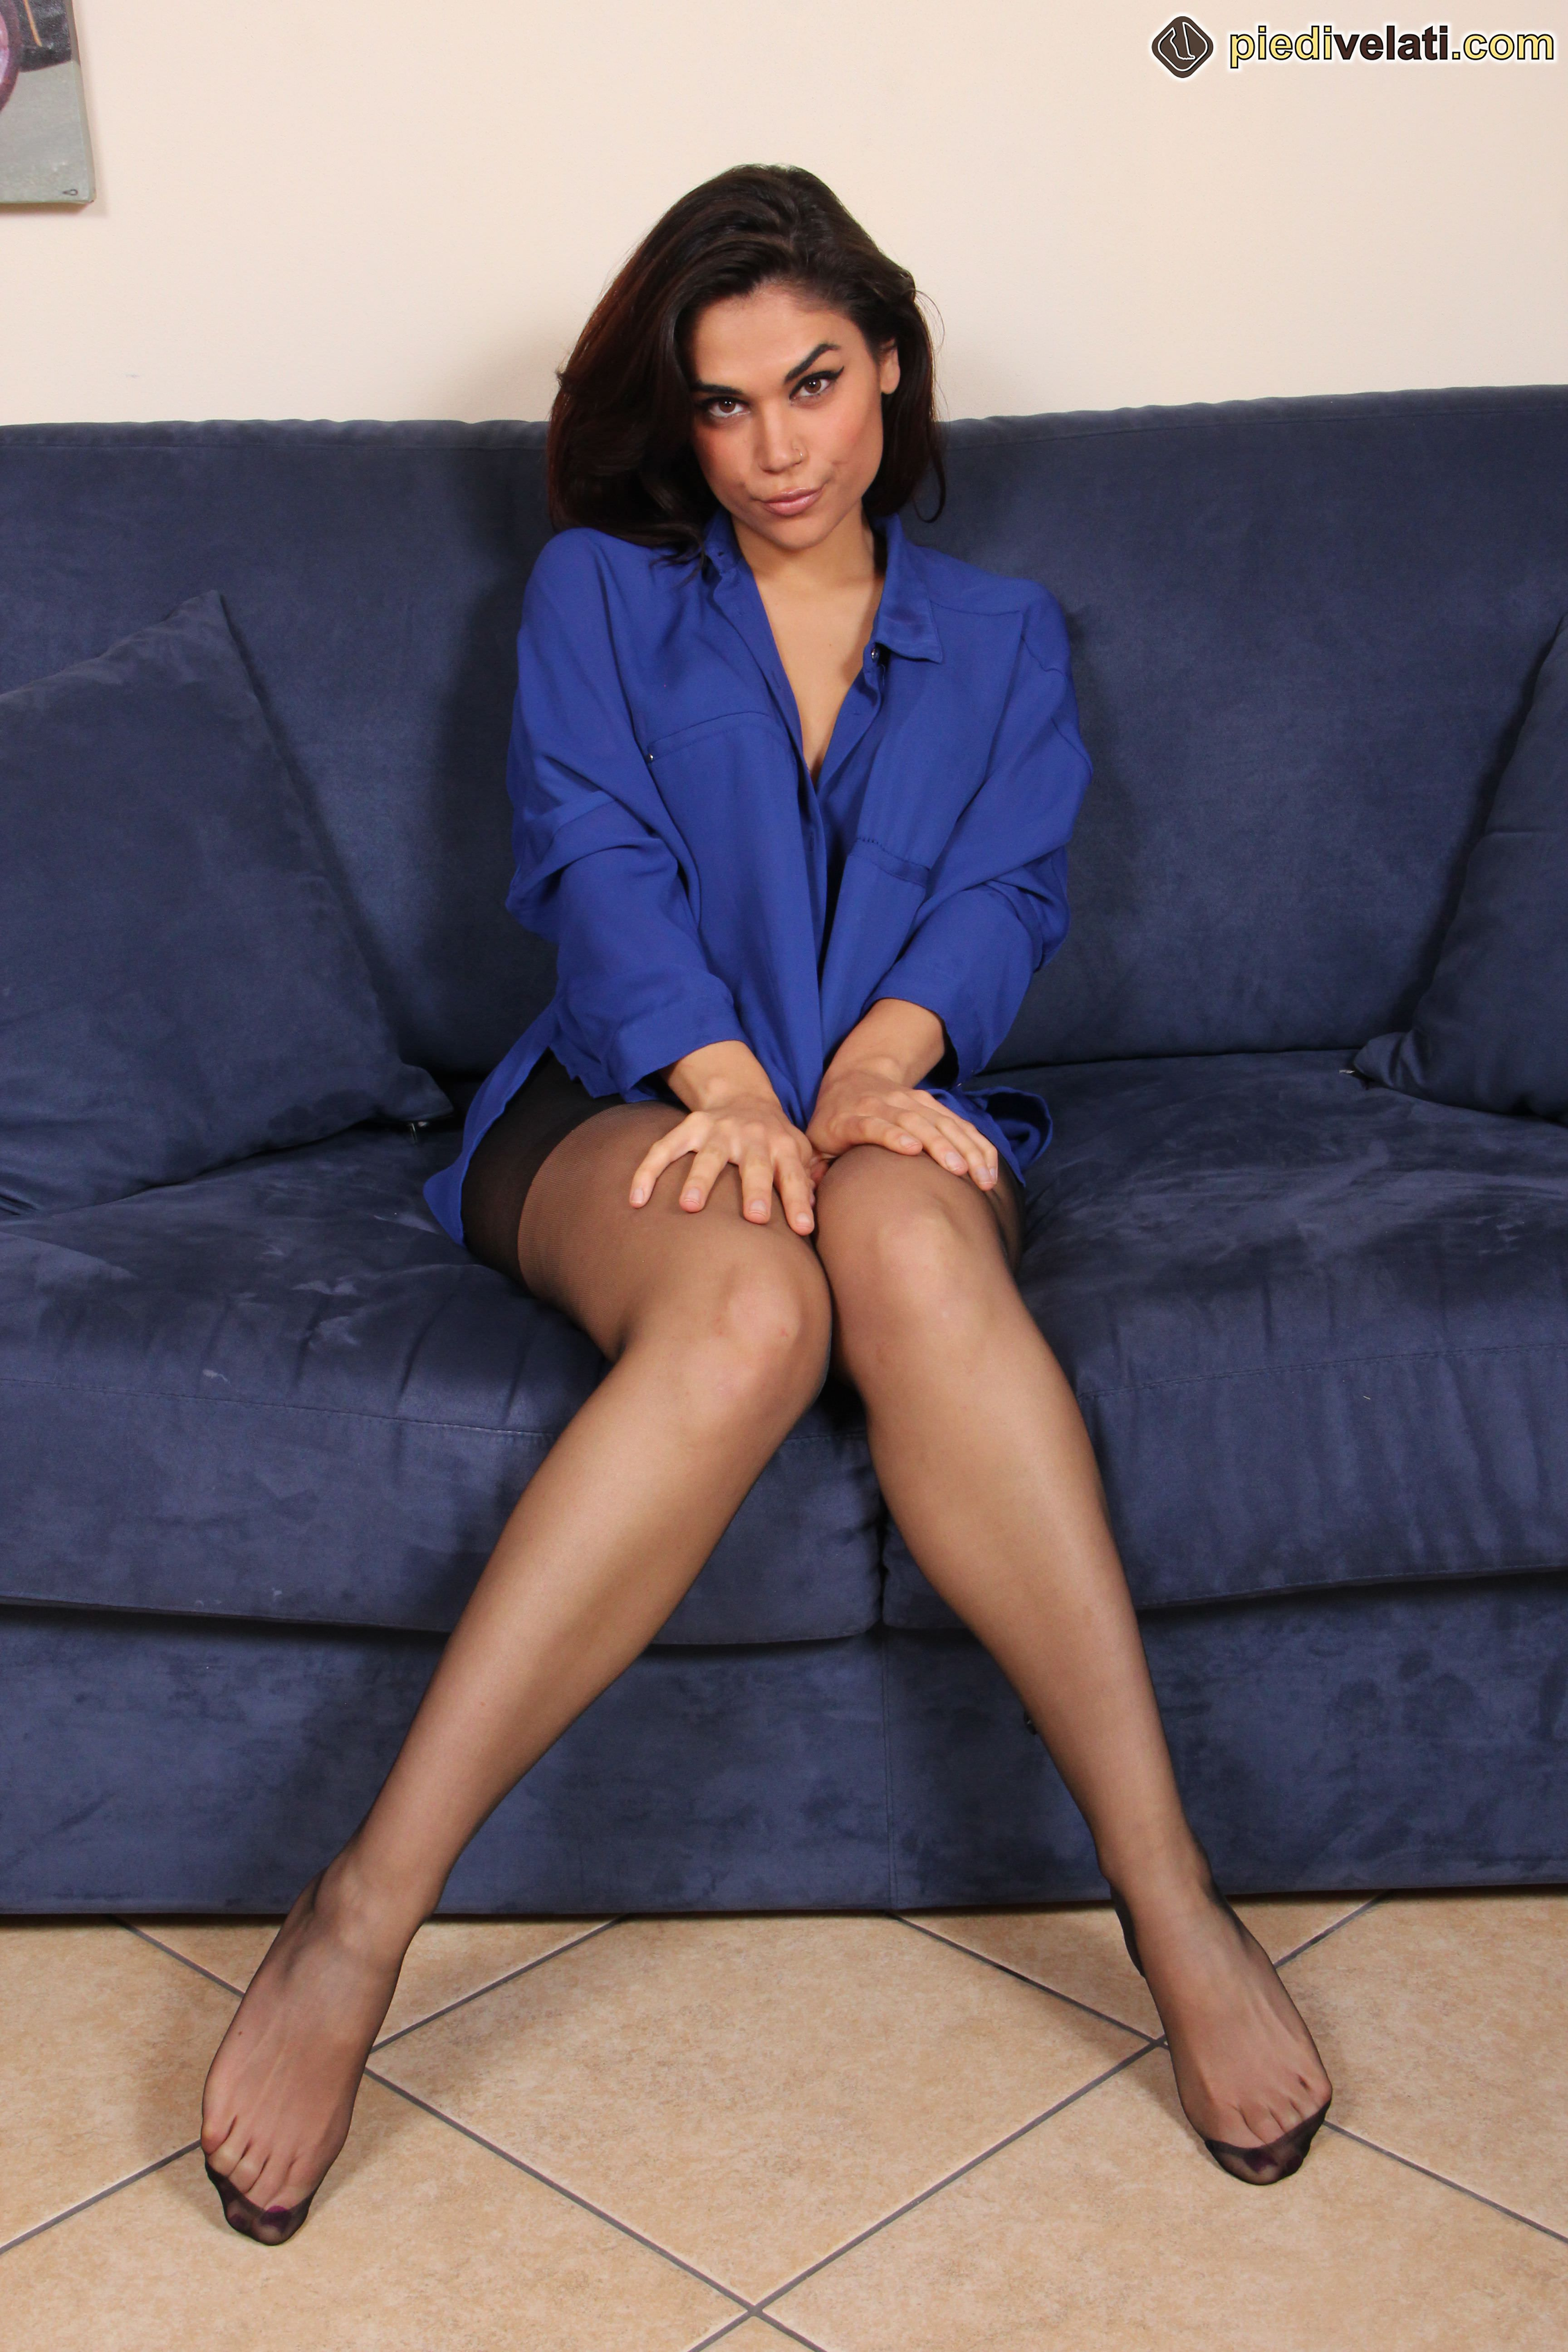 coed stocking video thumbs Brunette